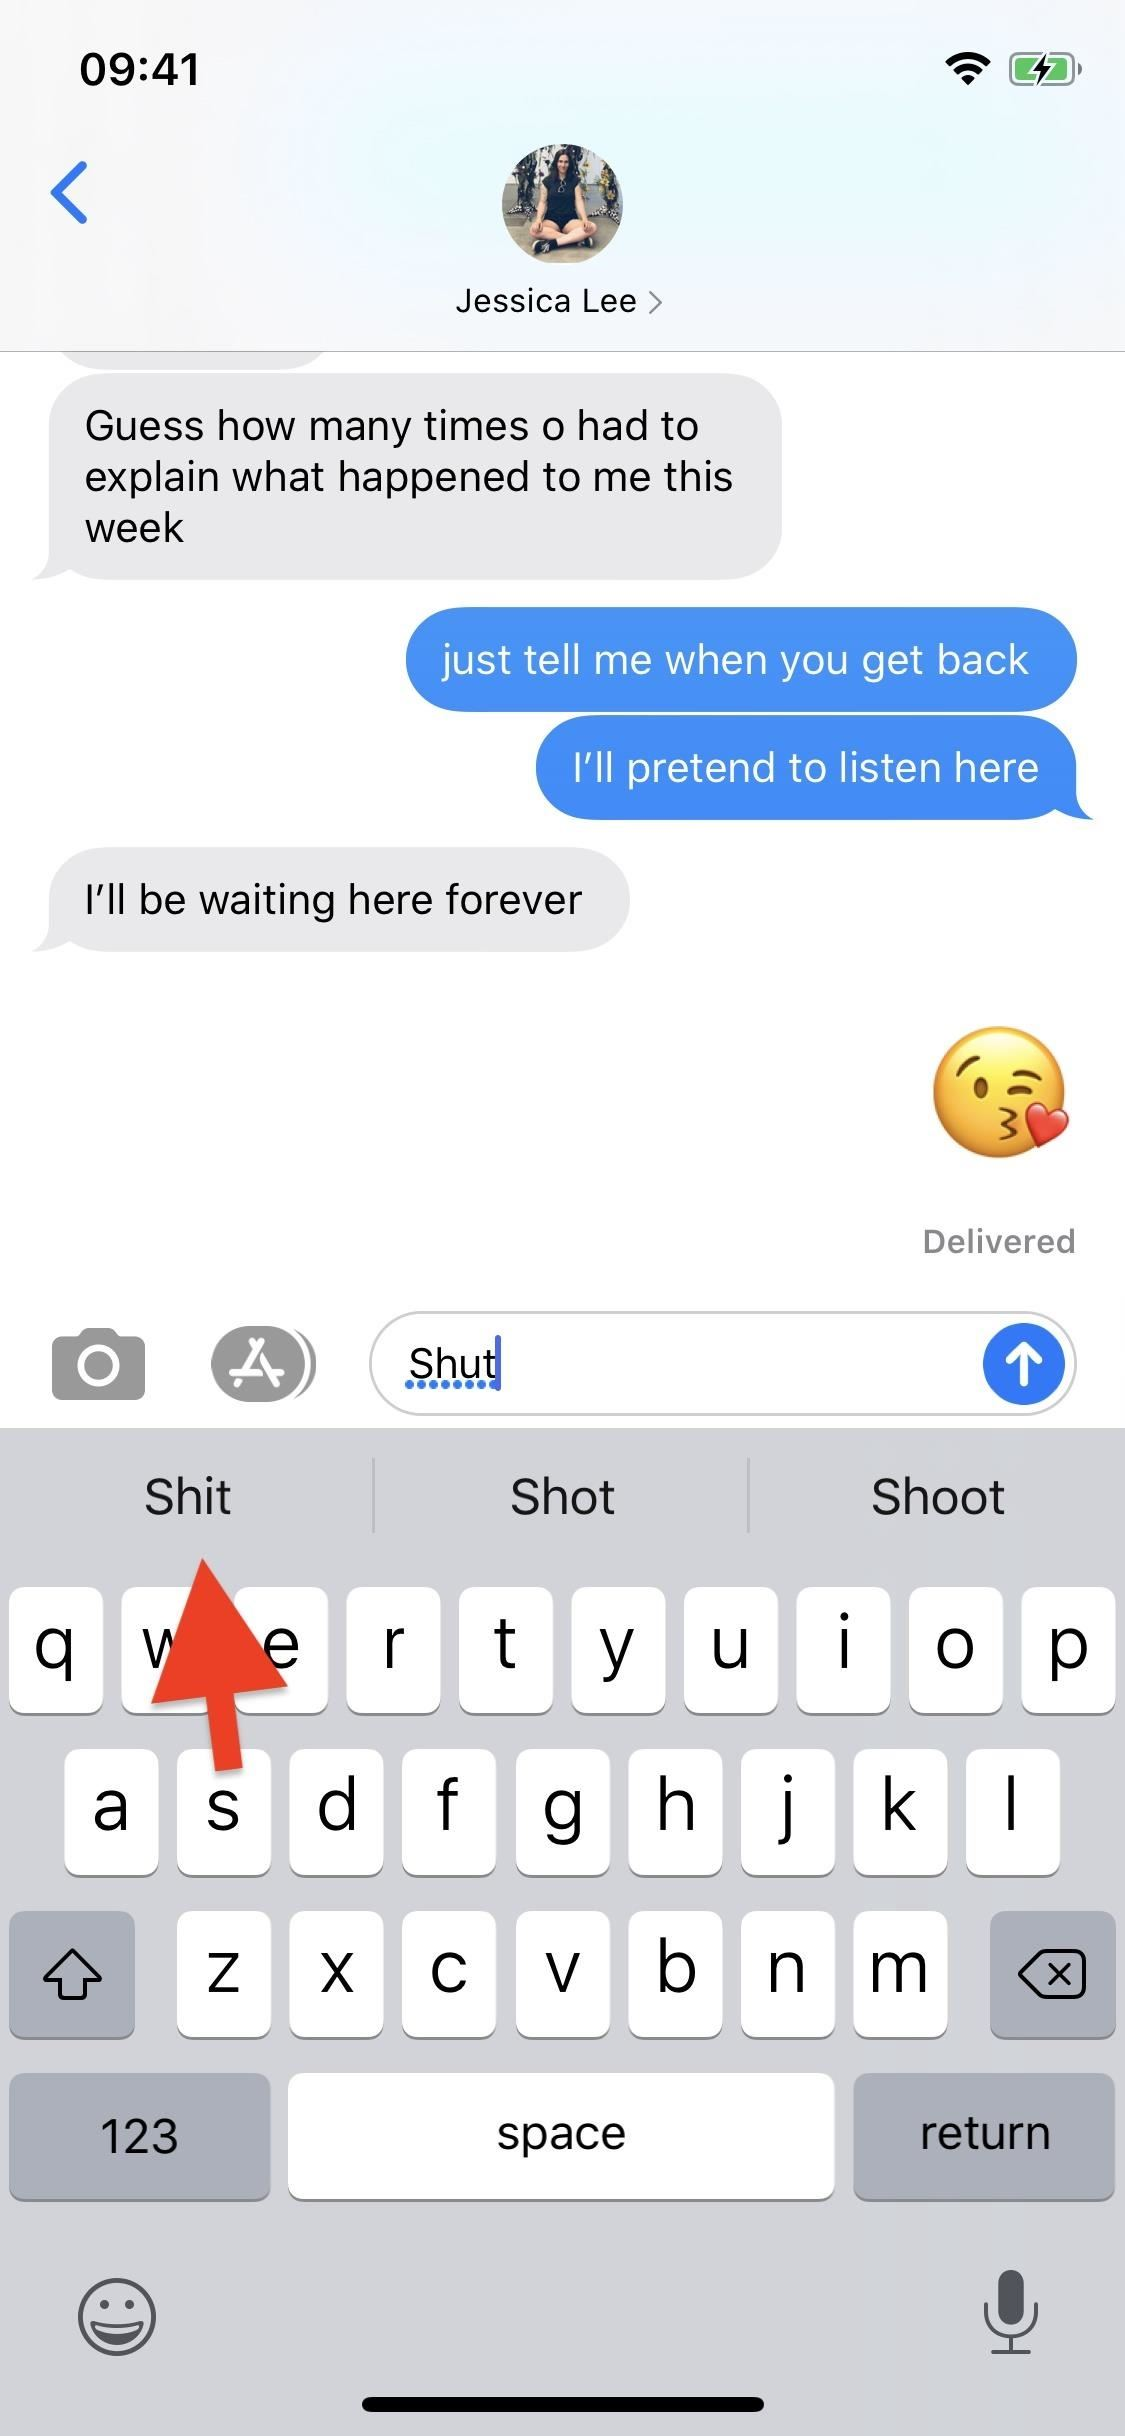 How to Type Curse Words with Apple's QuickPath Swipe-Typing Keyboard in iOS 13